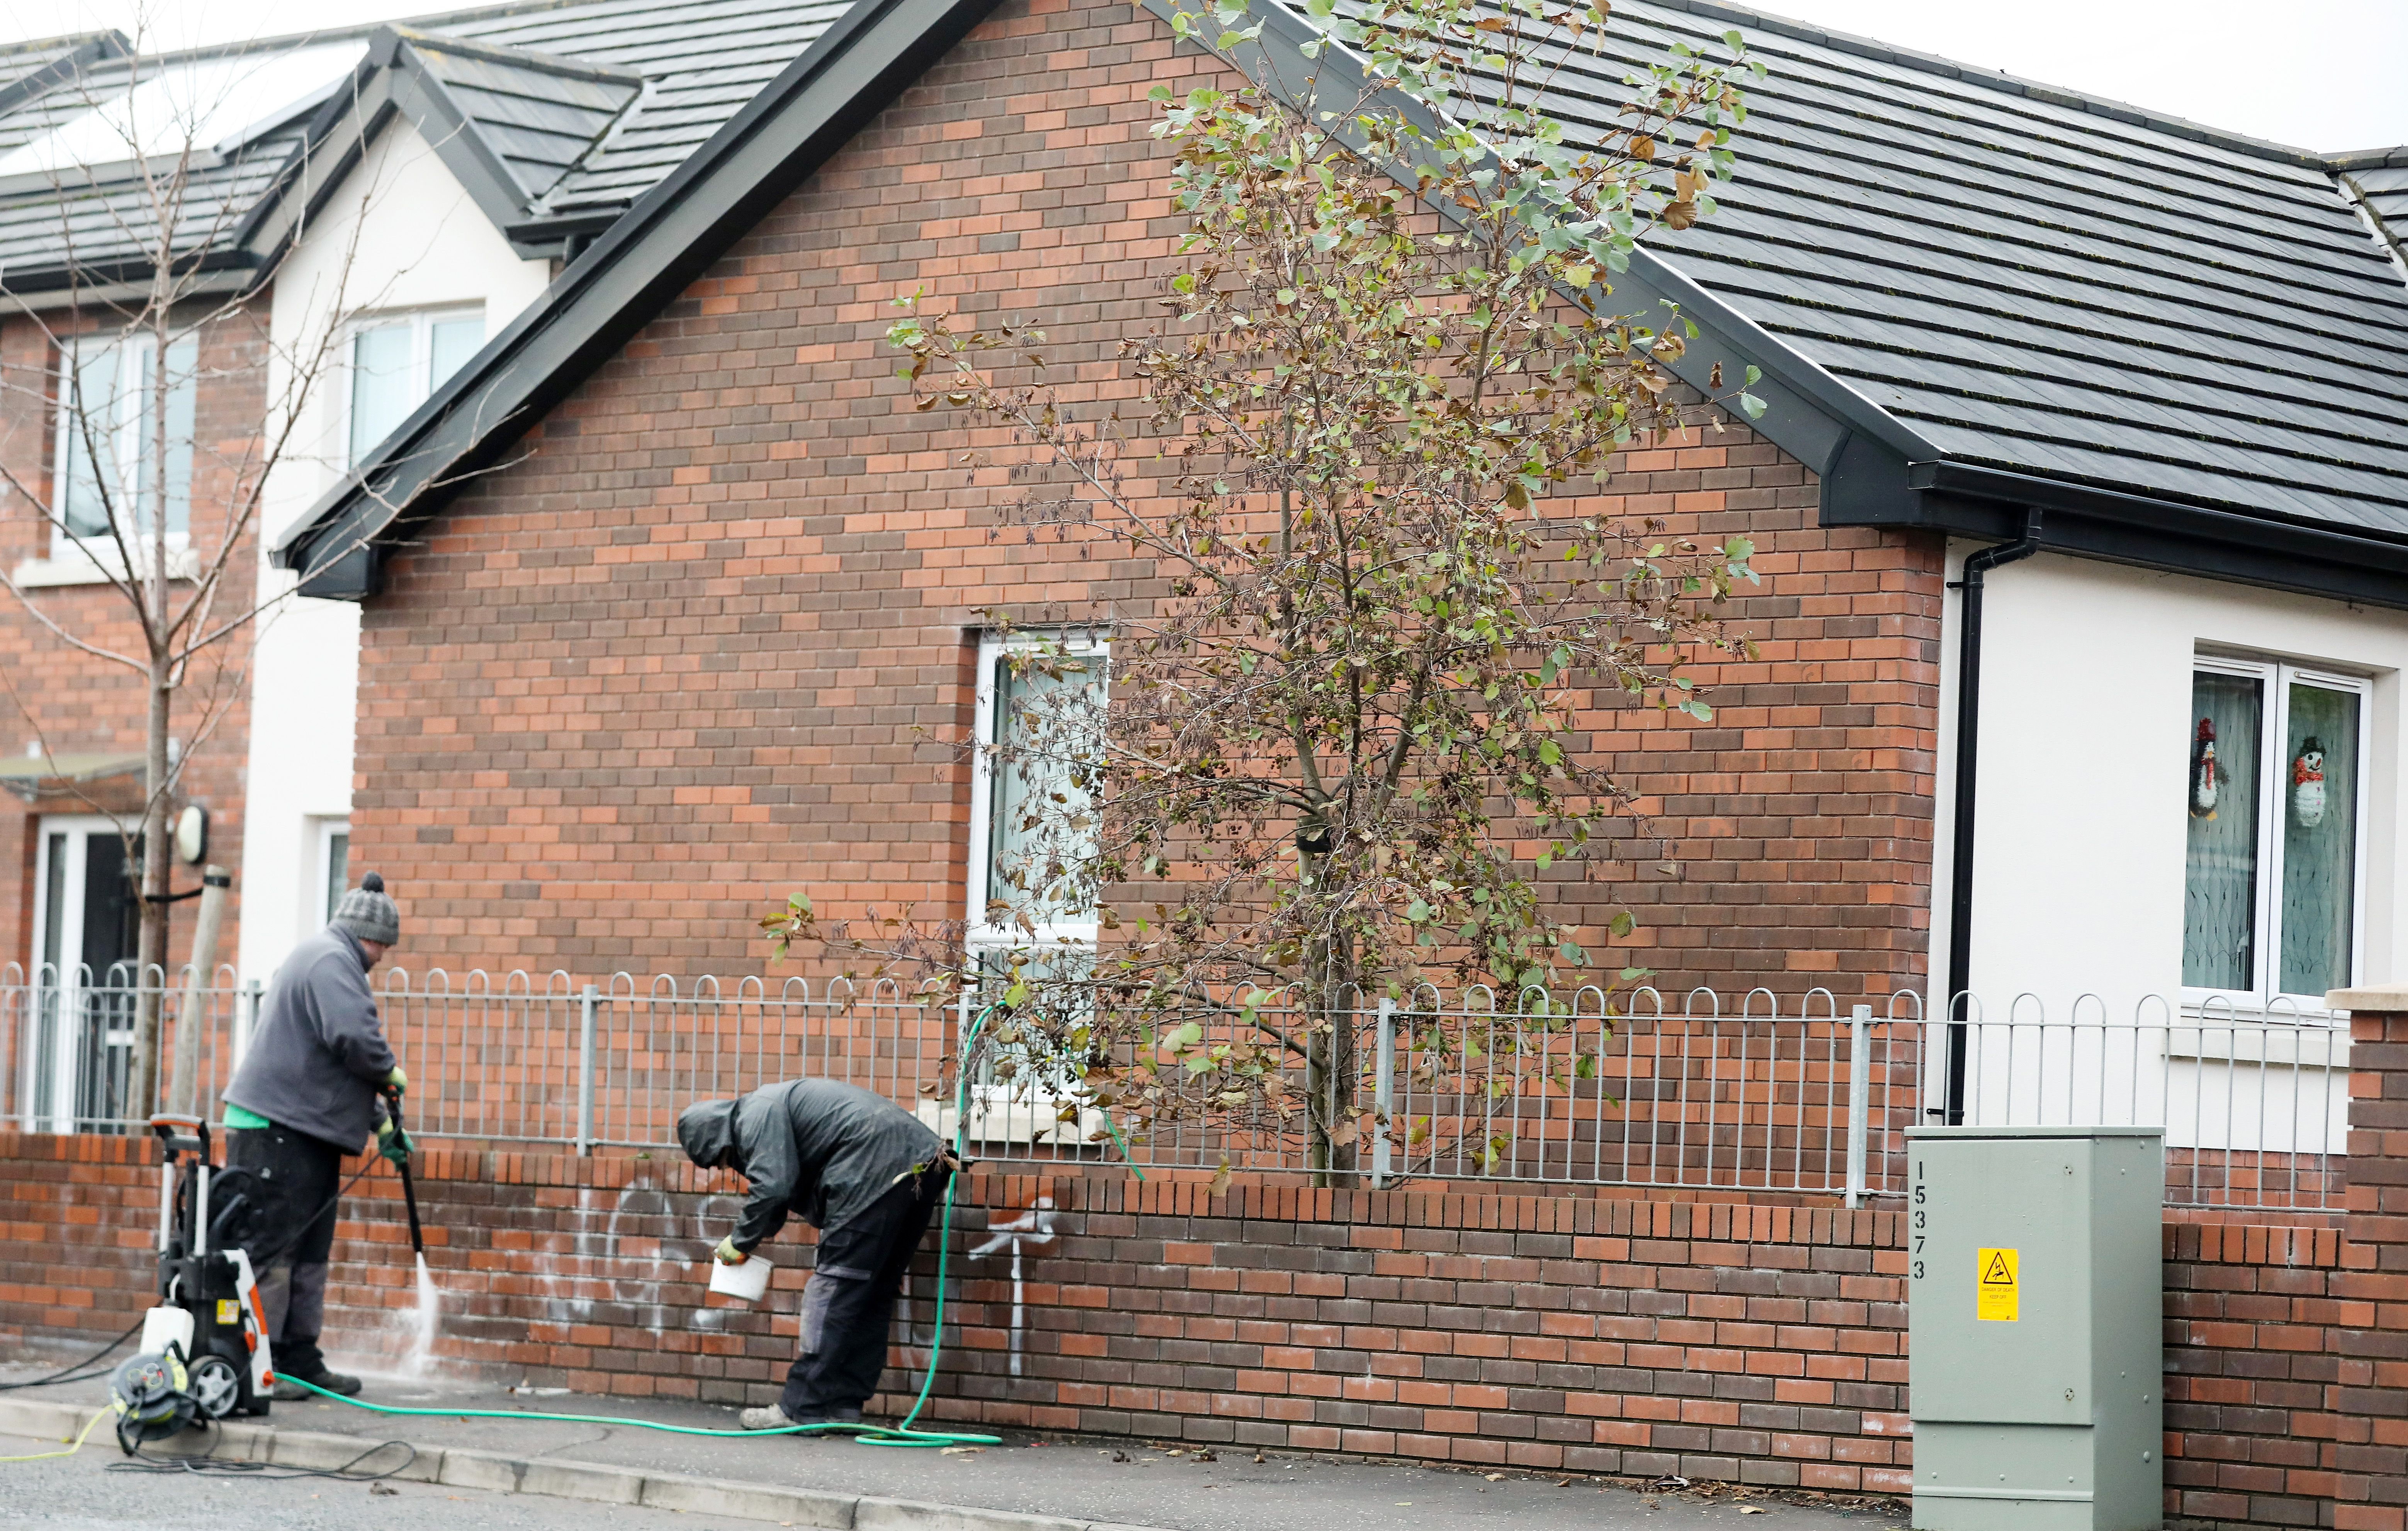 CLEAN-UP: The walls of a property in the Queen Victoria Gardens area of North Belfast